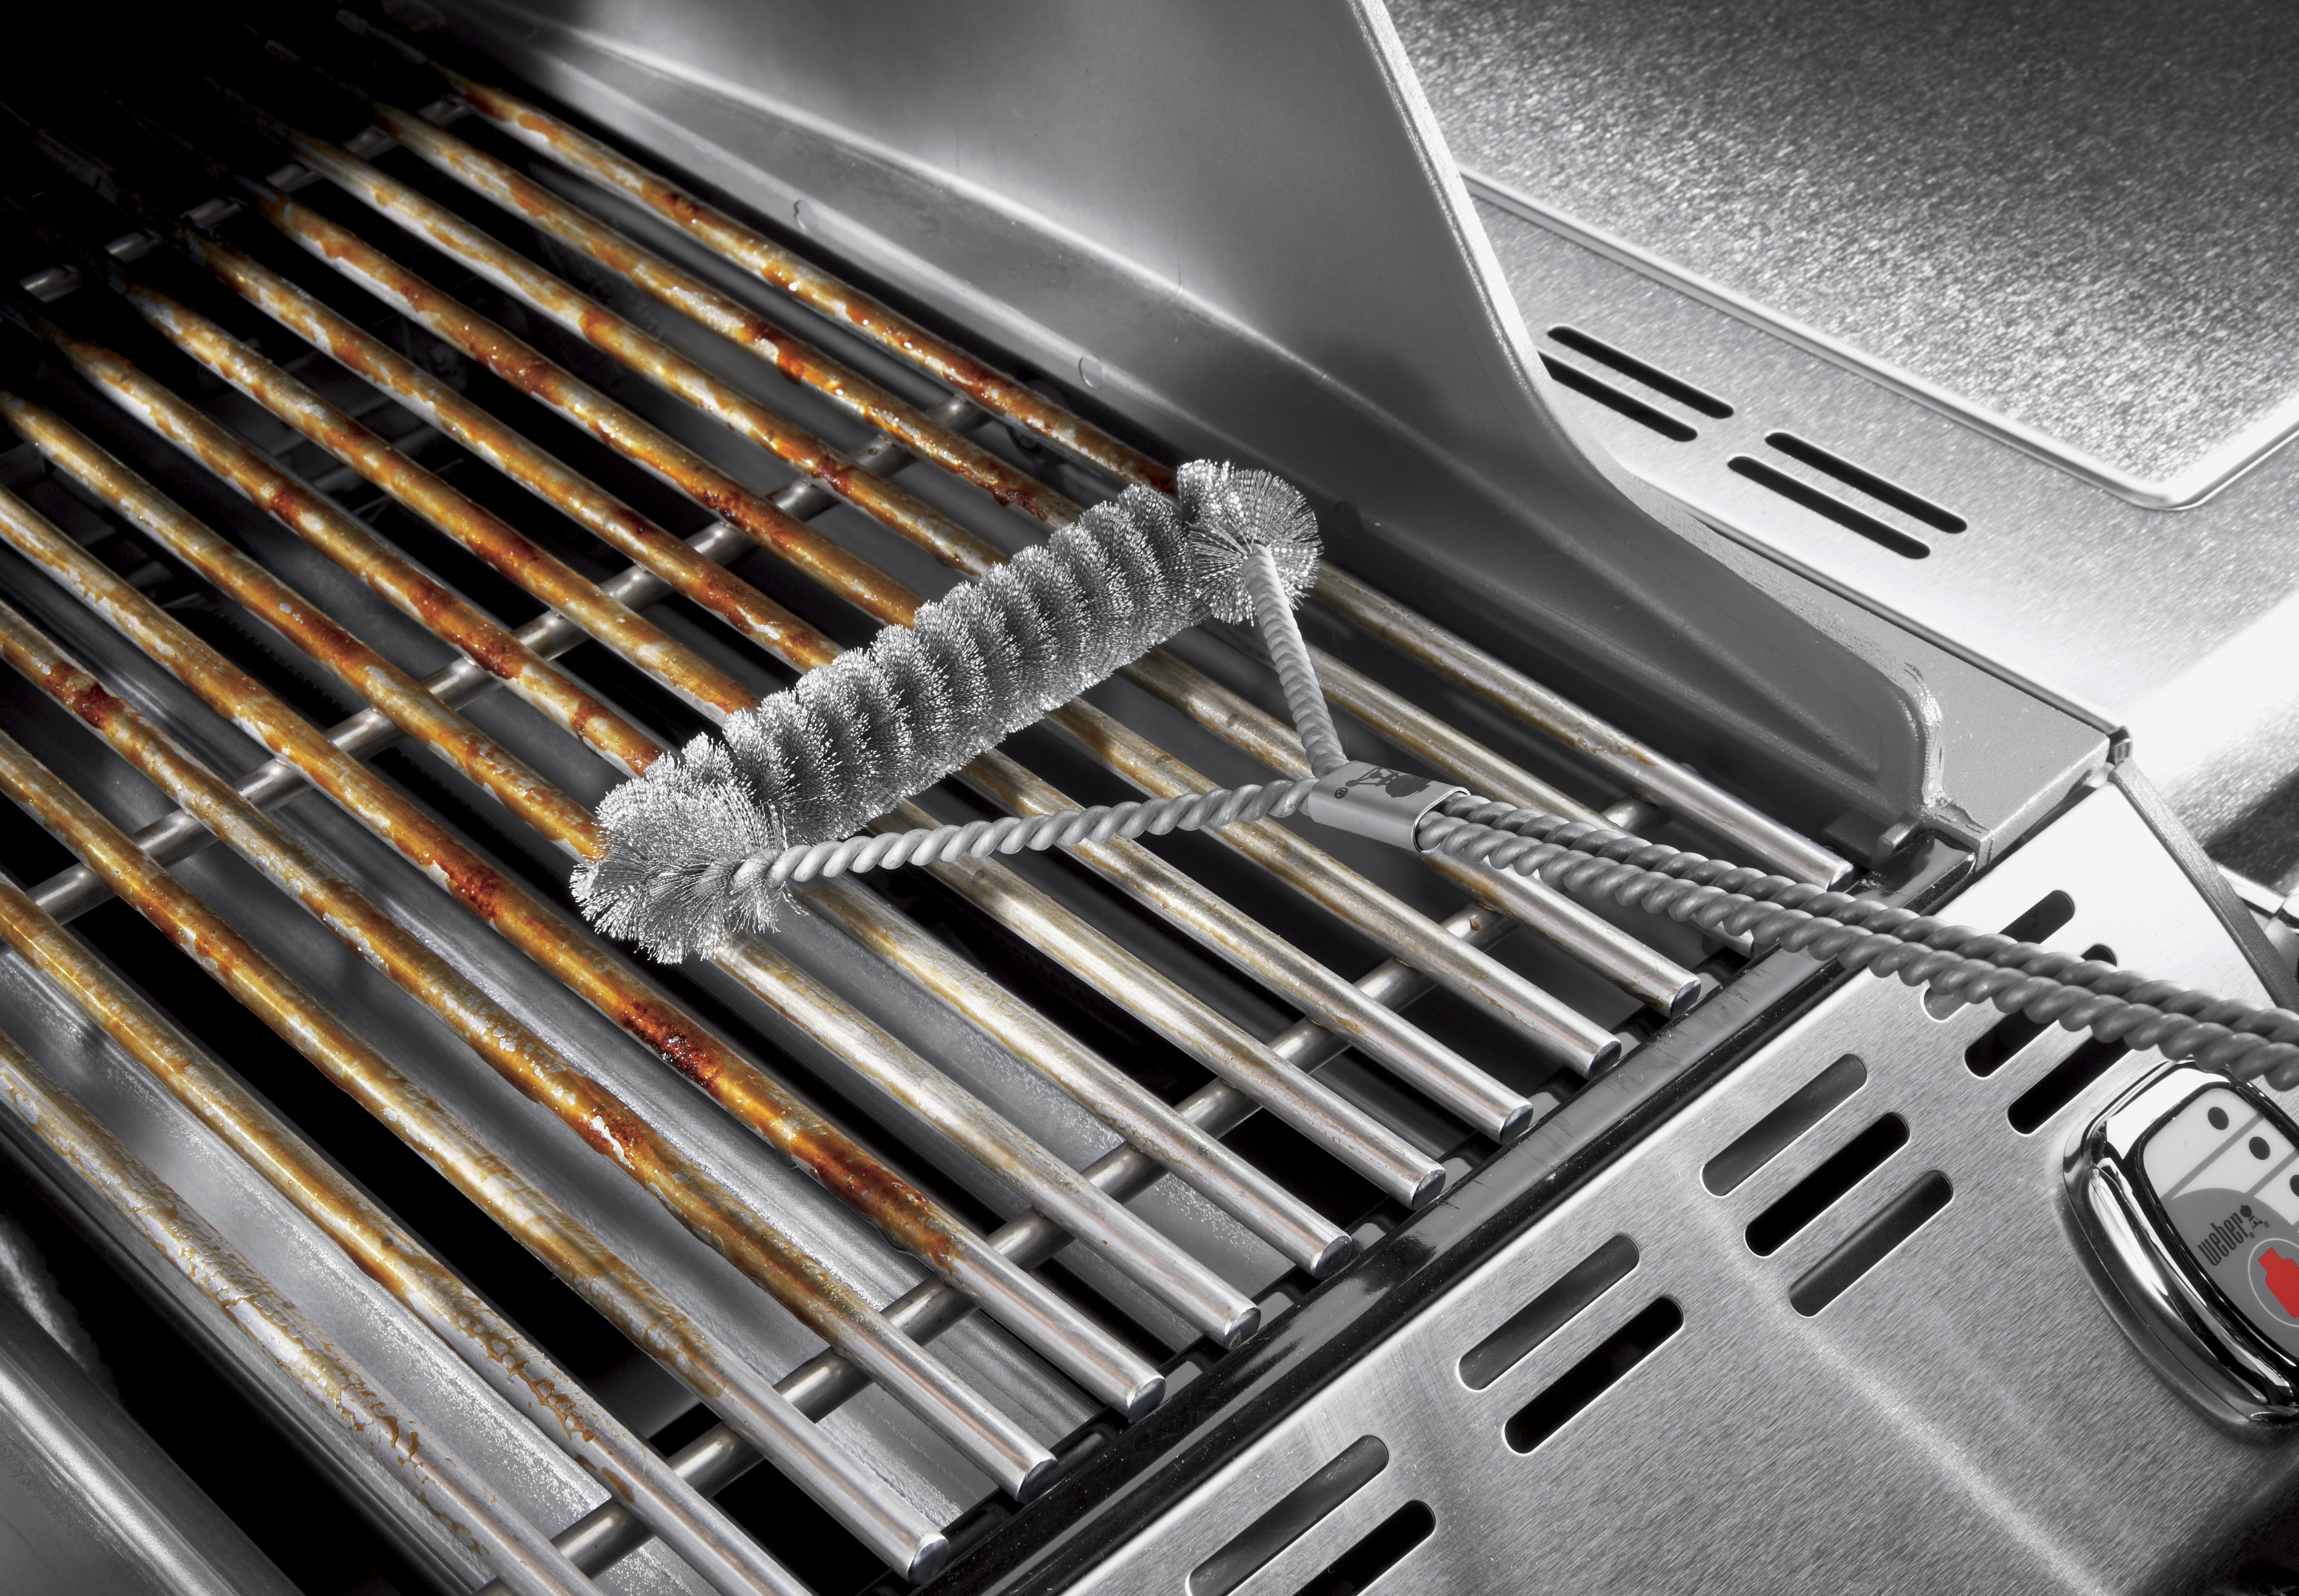 Weber Grill Holzkohlegrill Performer Deluxe Gbs Gourmet : So pflegst du deinen grill richtig grill know how